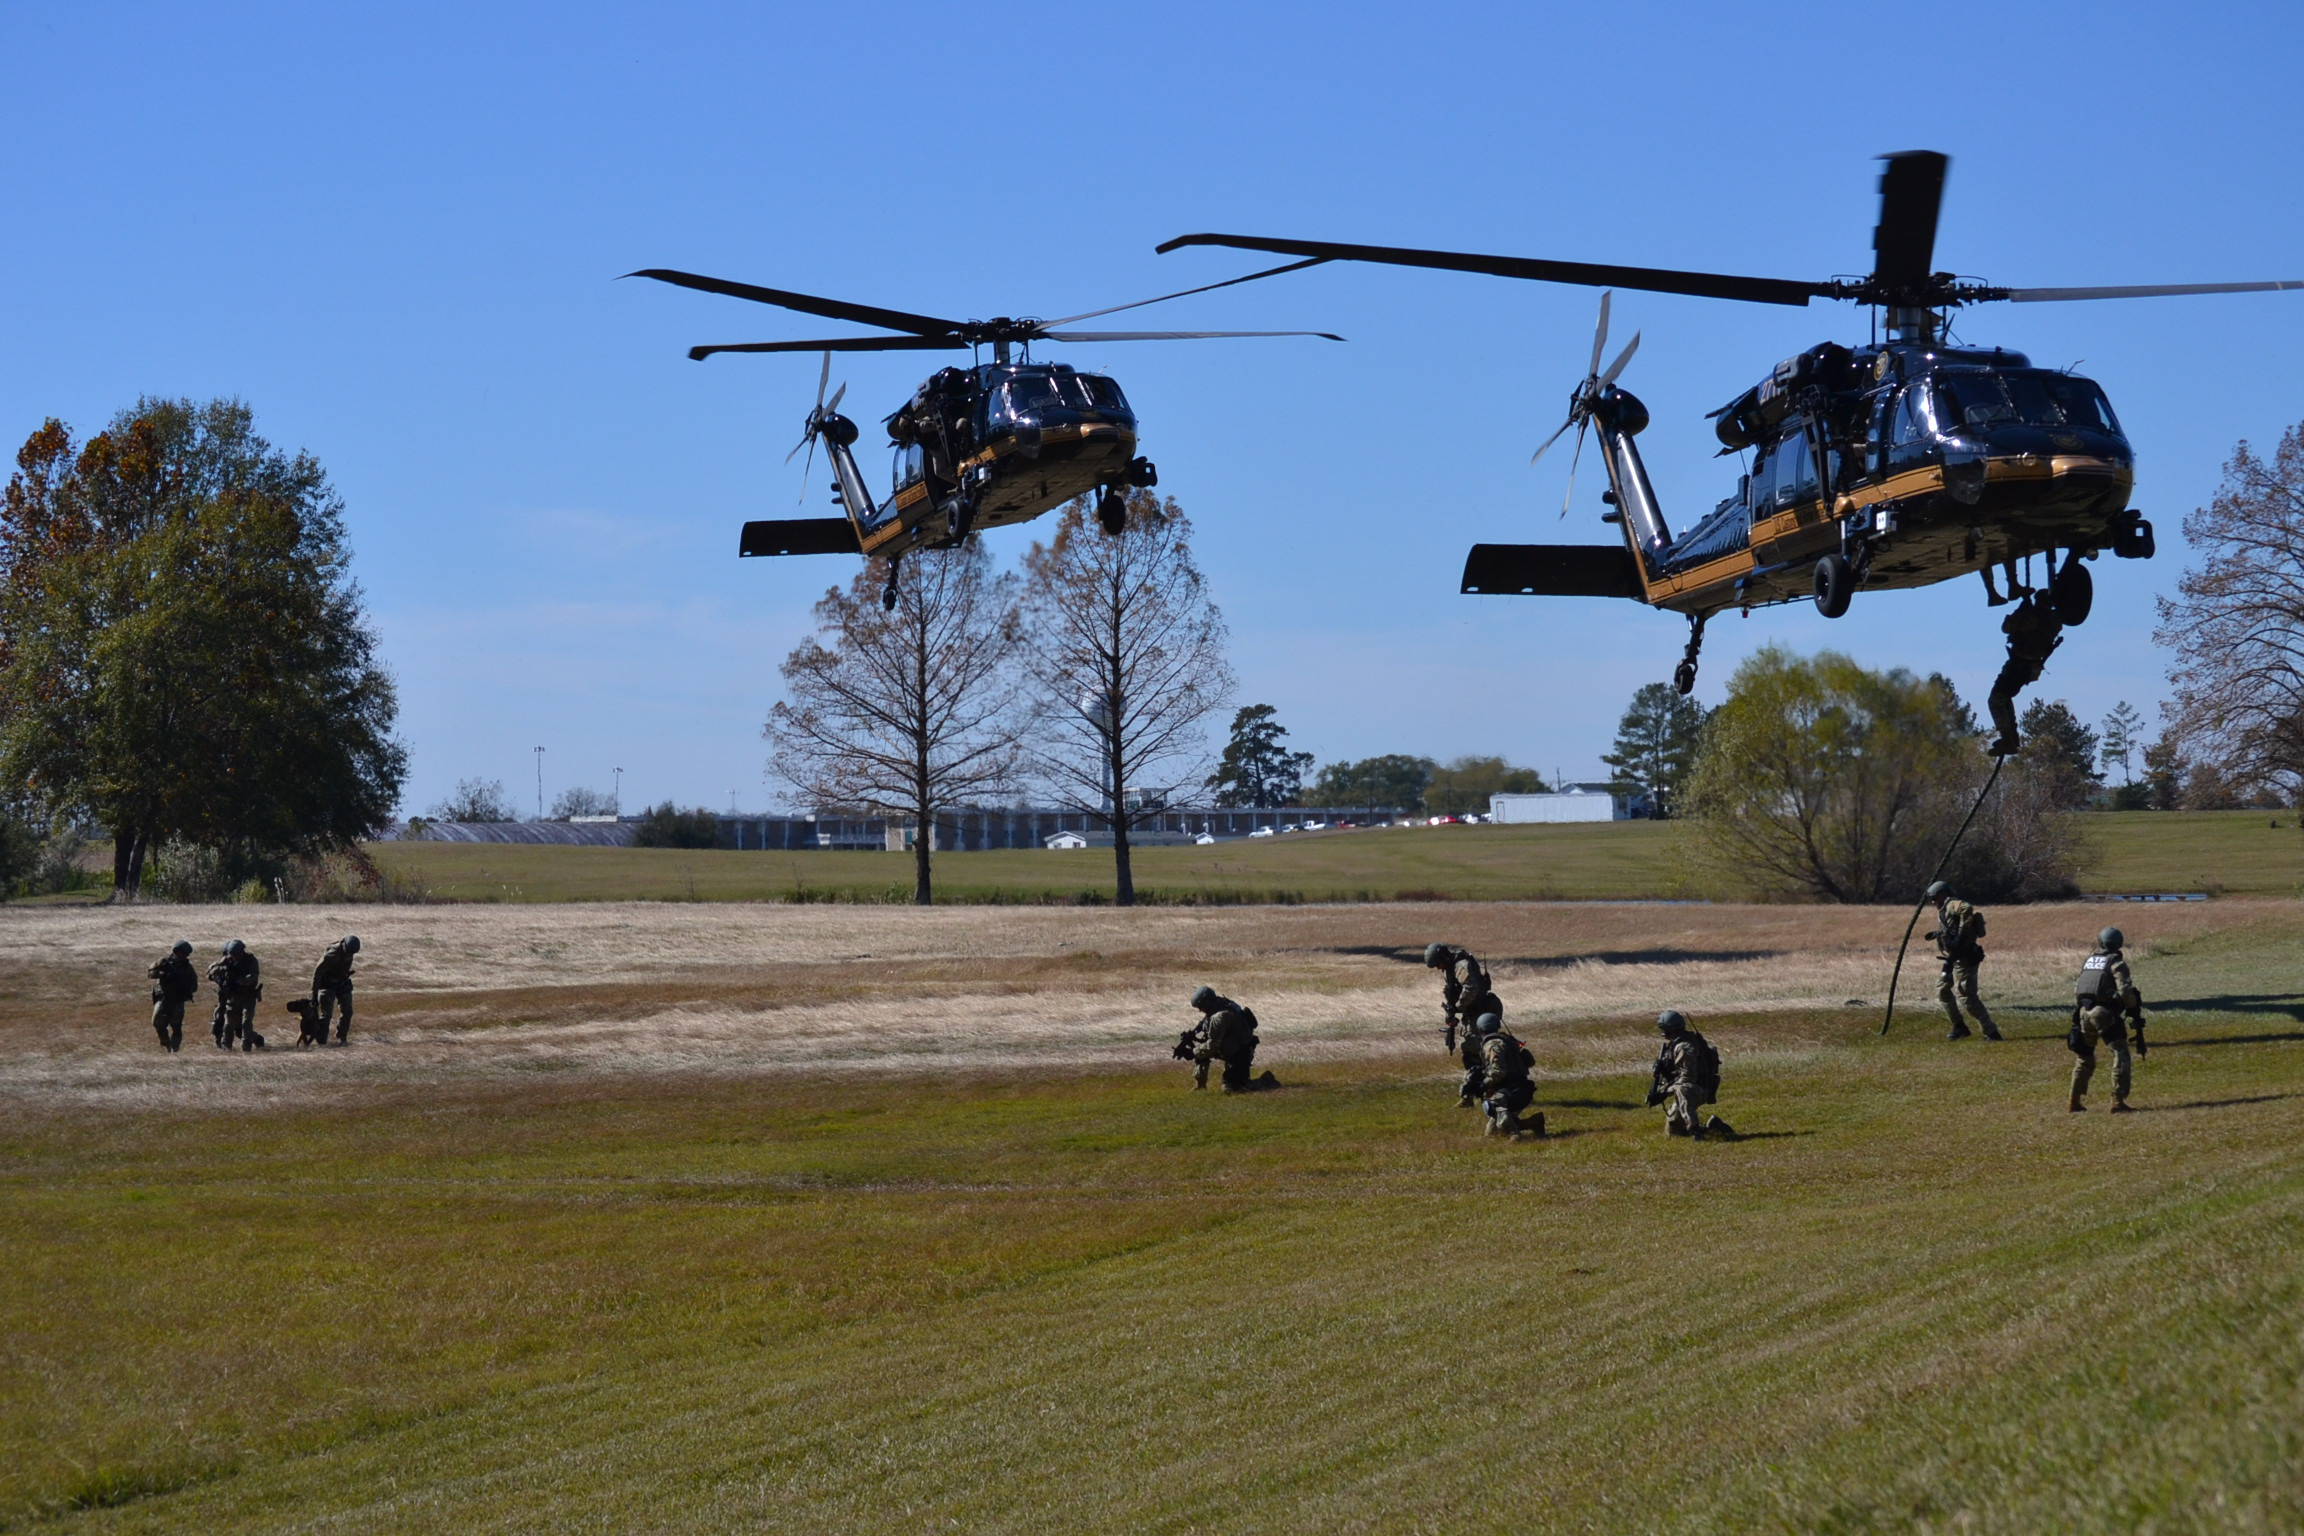 ATF Special Response Teams practice fast-roping from helicopters during training prior to an operation.